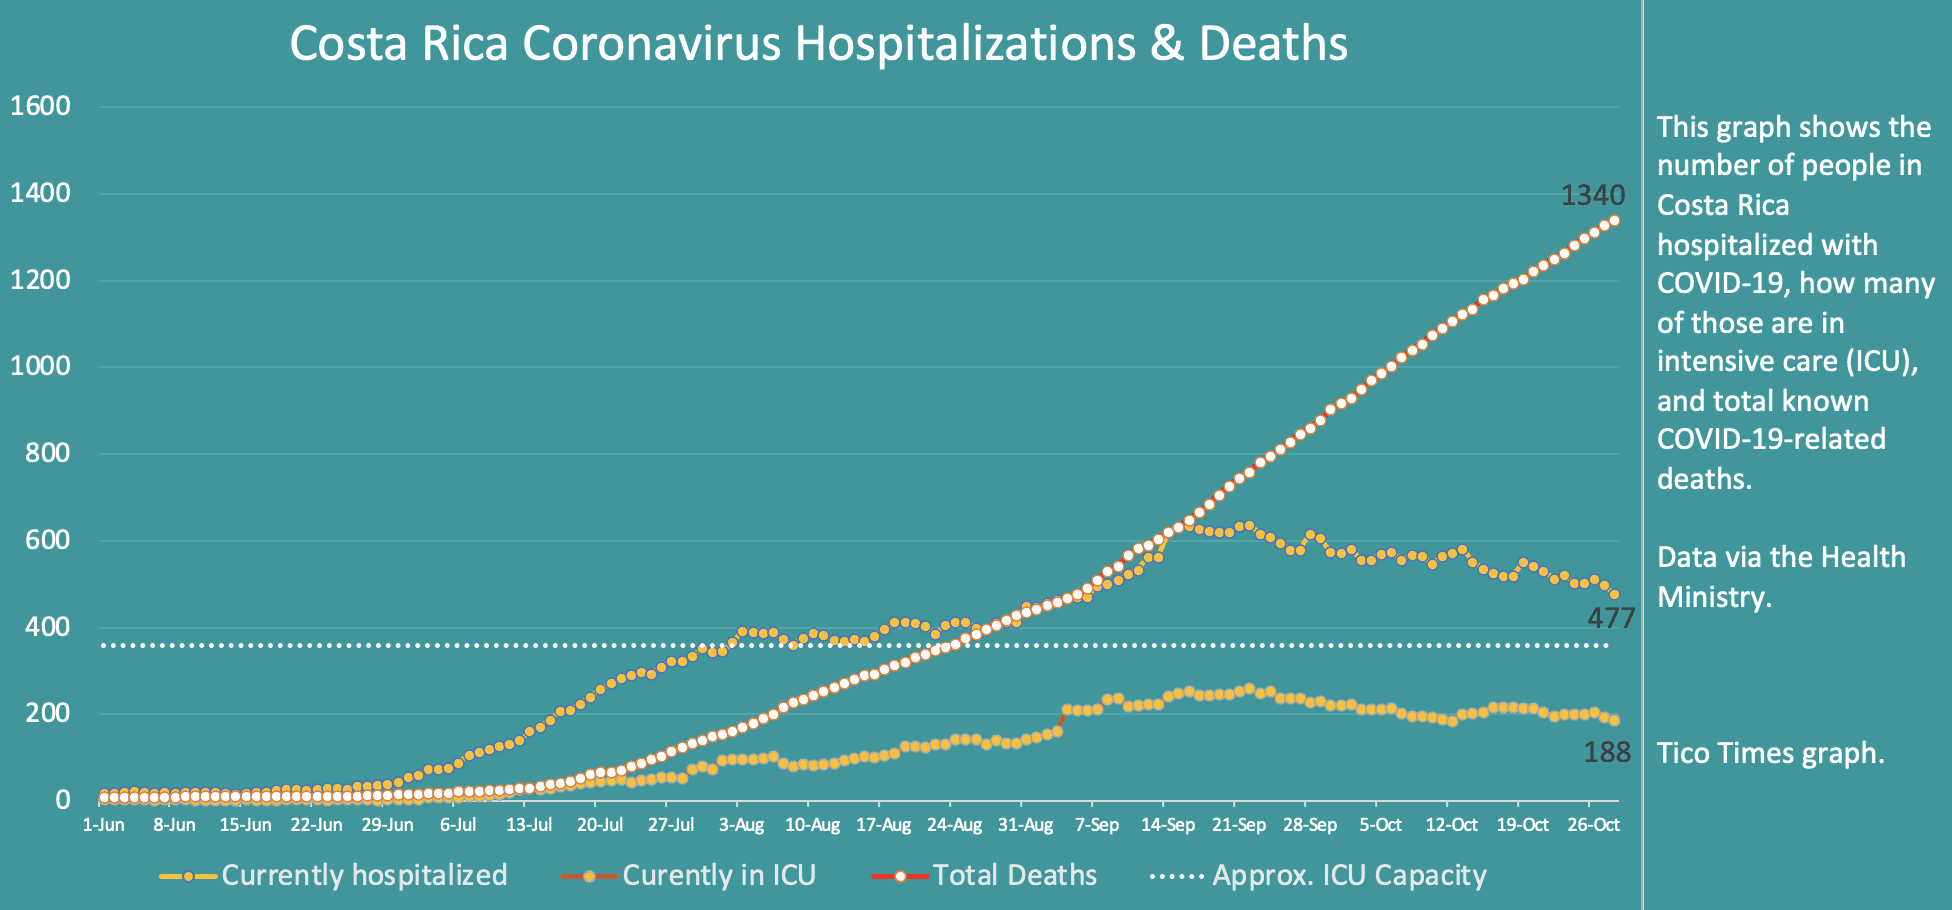 Costa Rica coronavirus hospitalizations and deaths October 28 2020